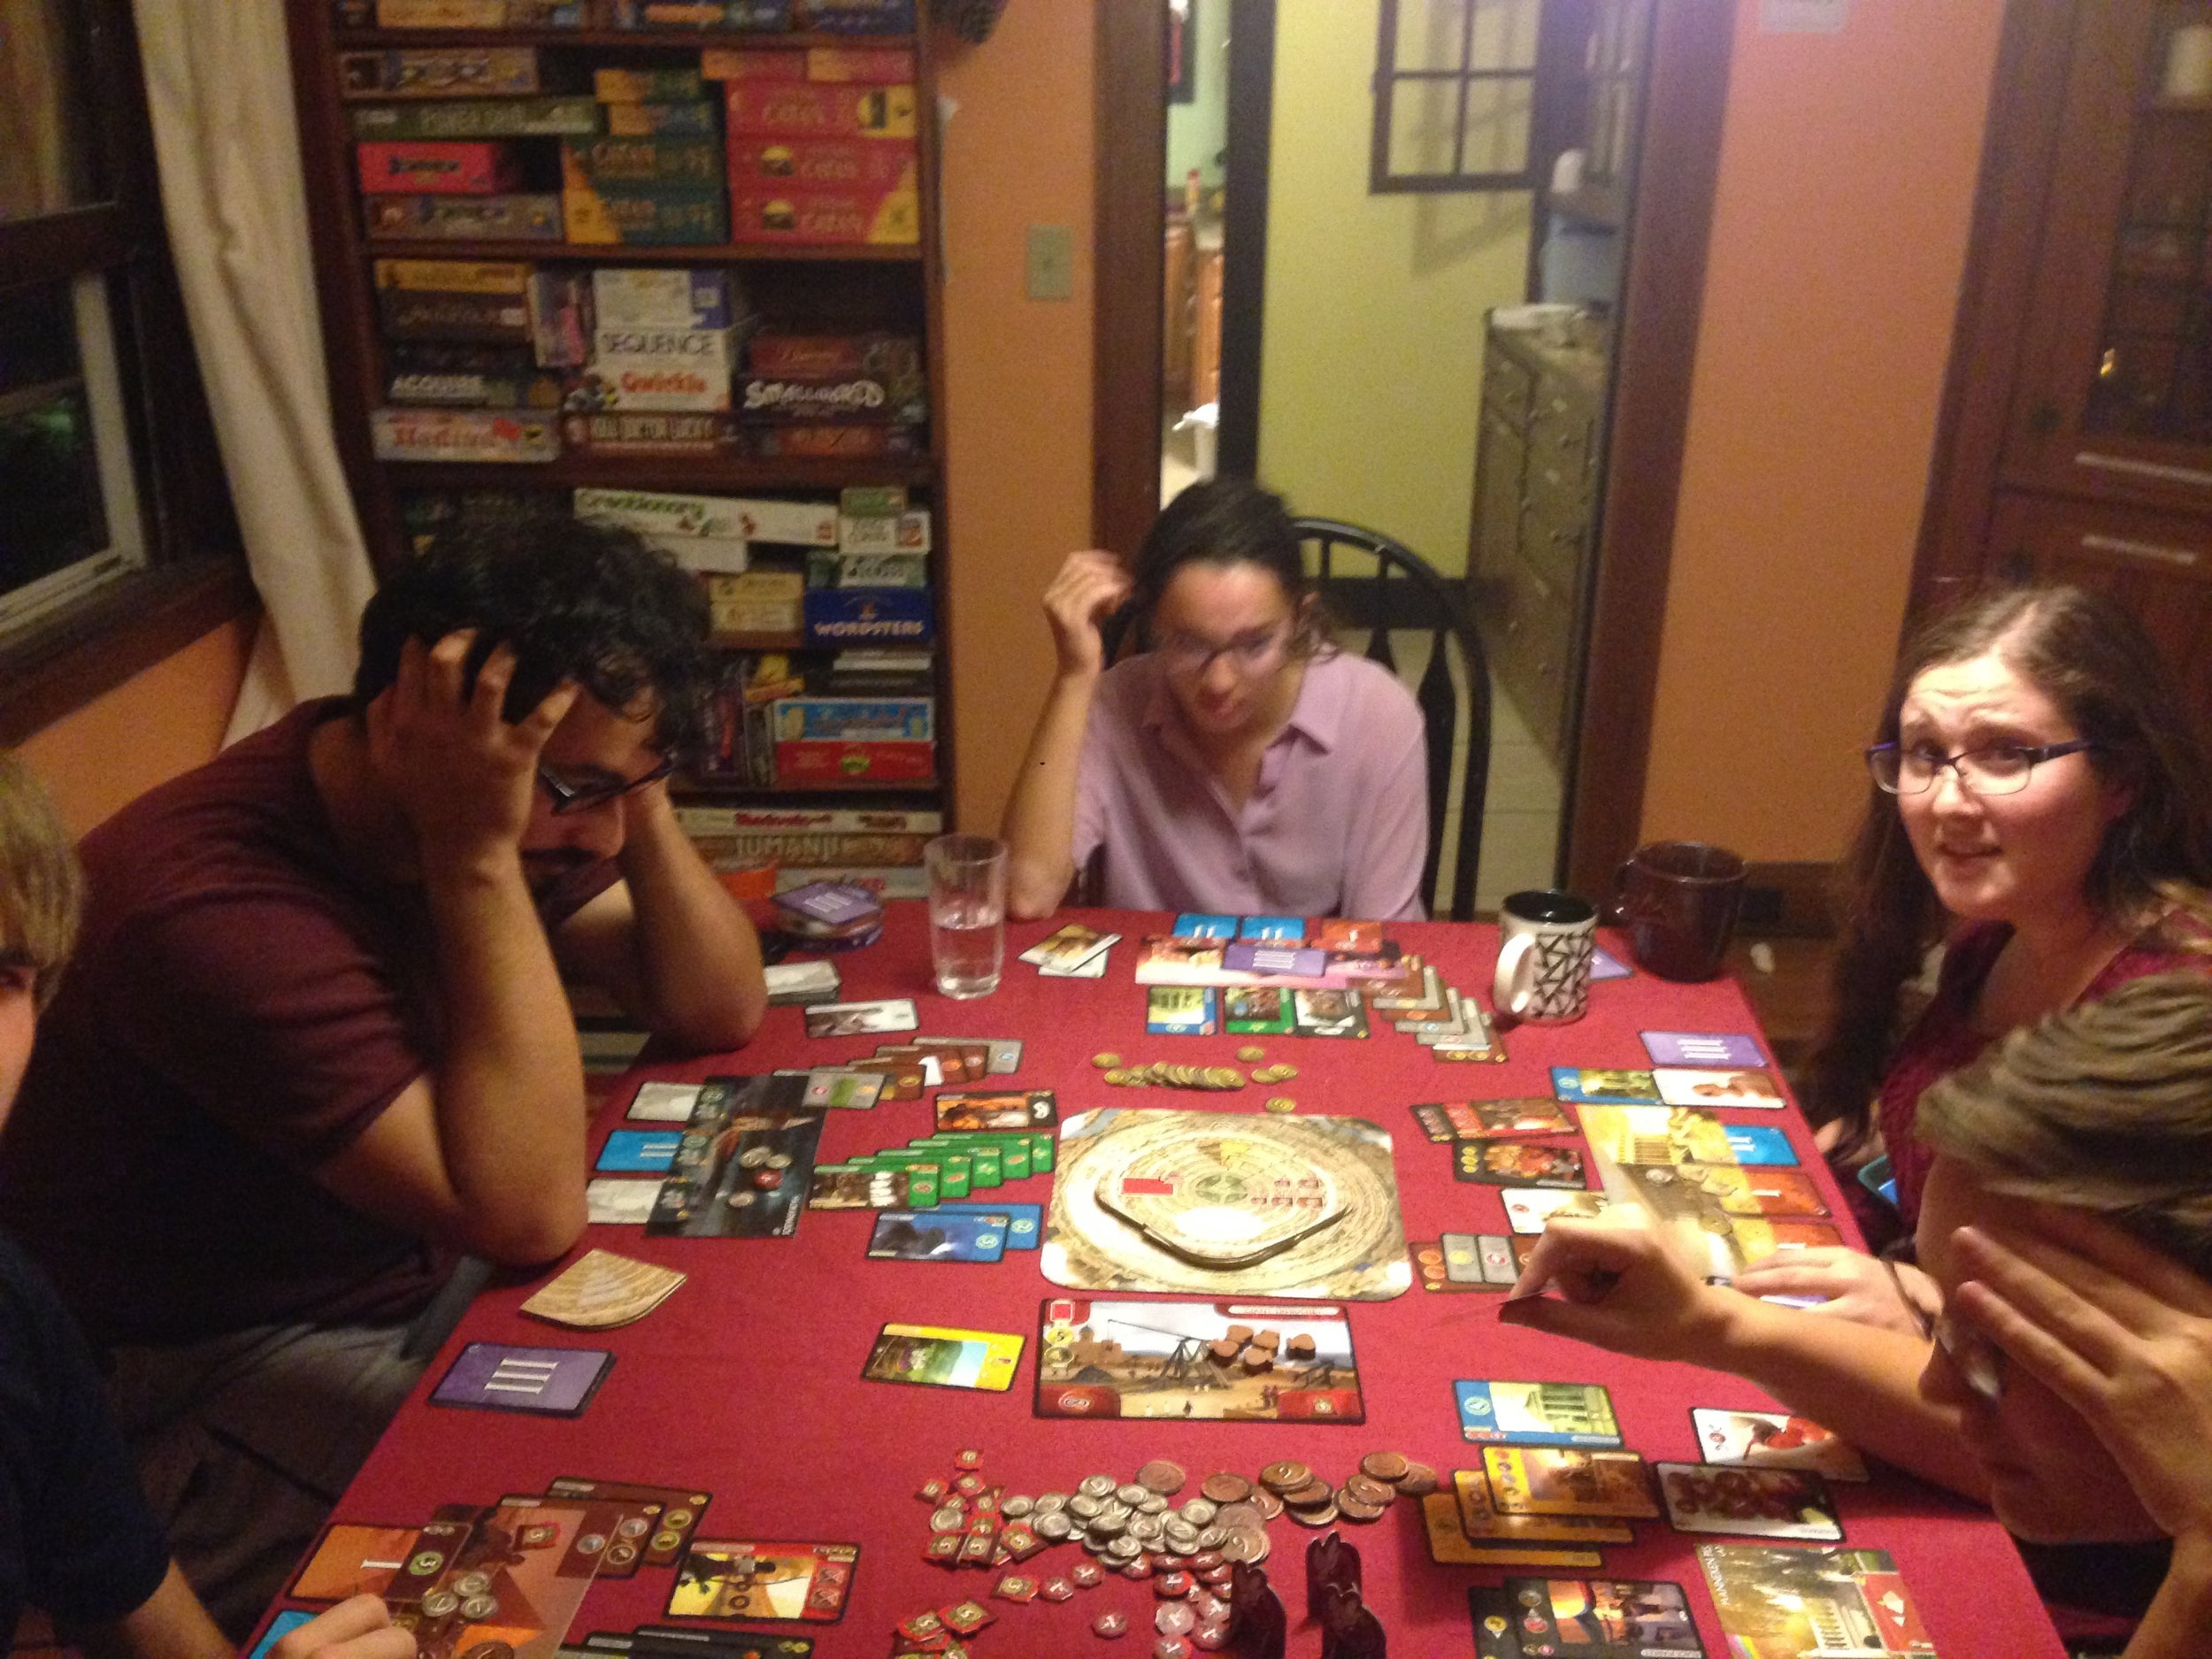 Seven Wonders with ALL the expansions